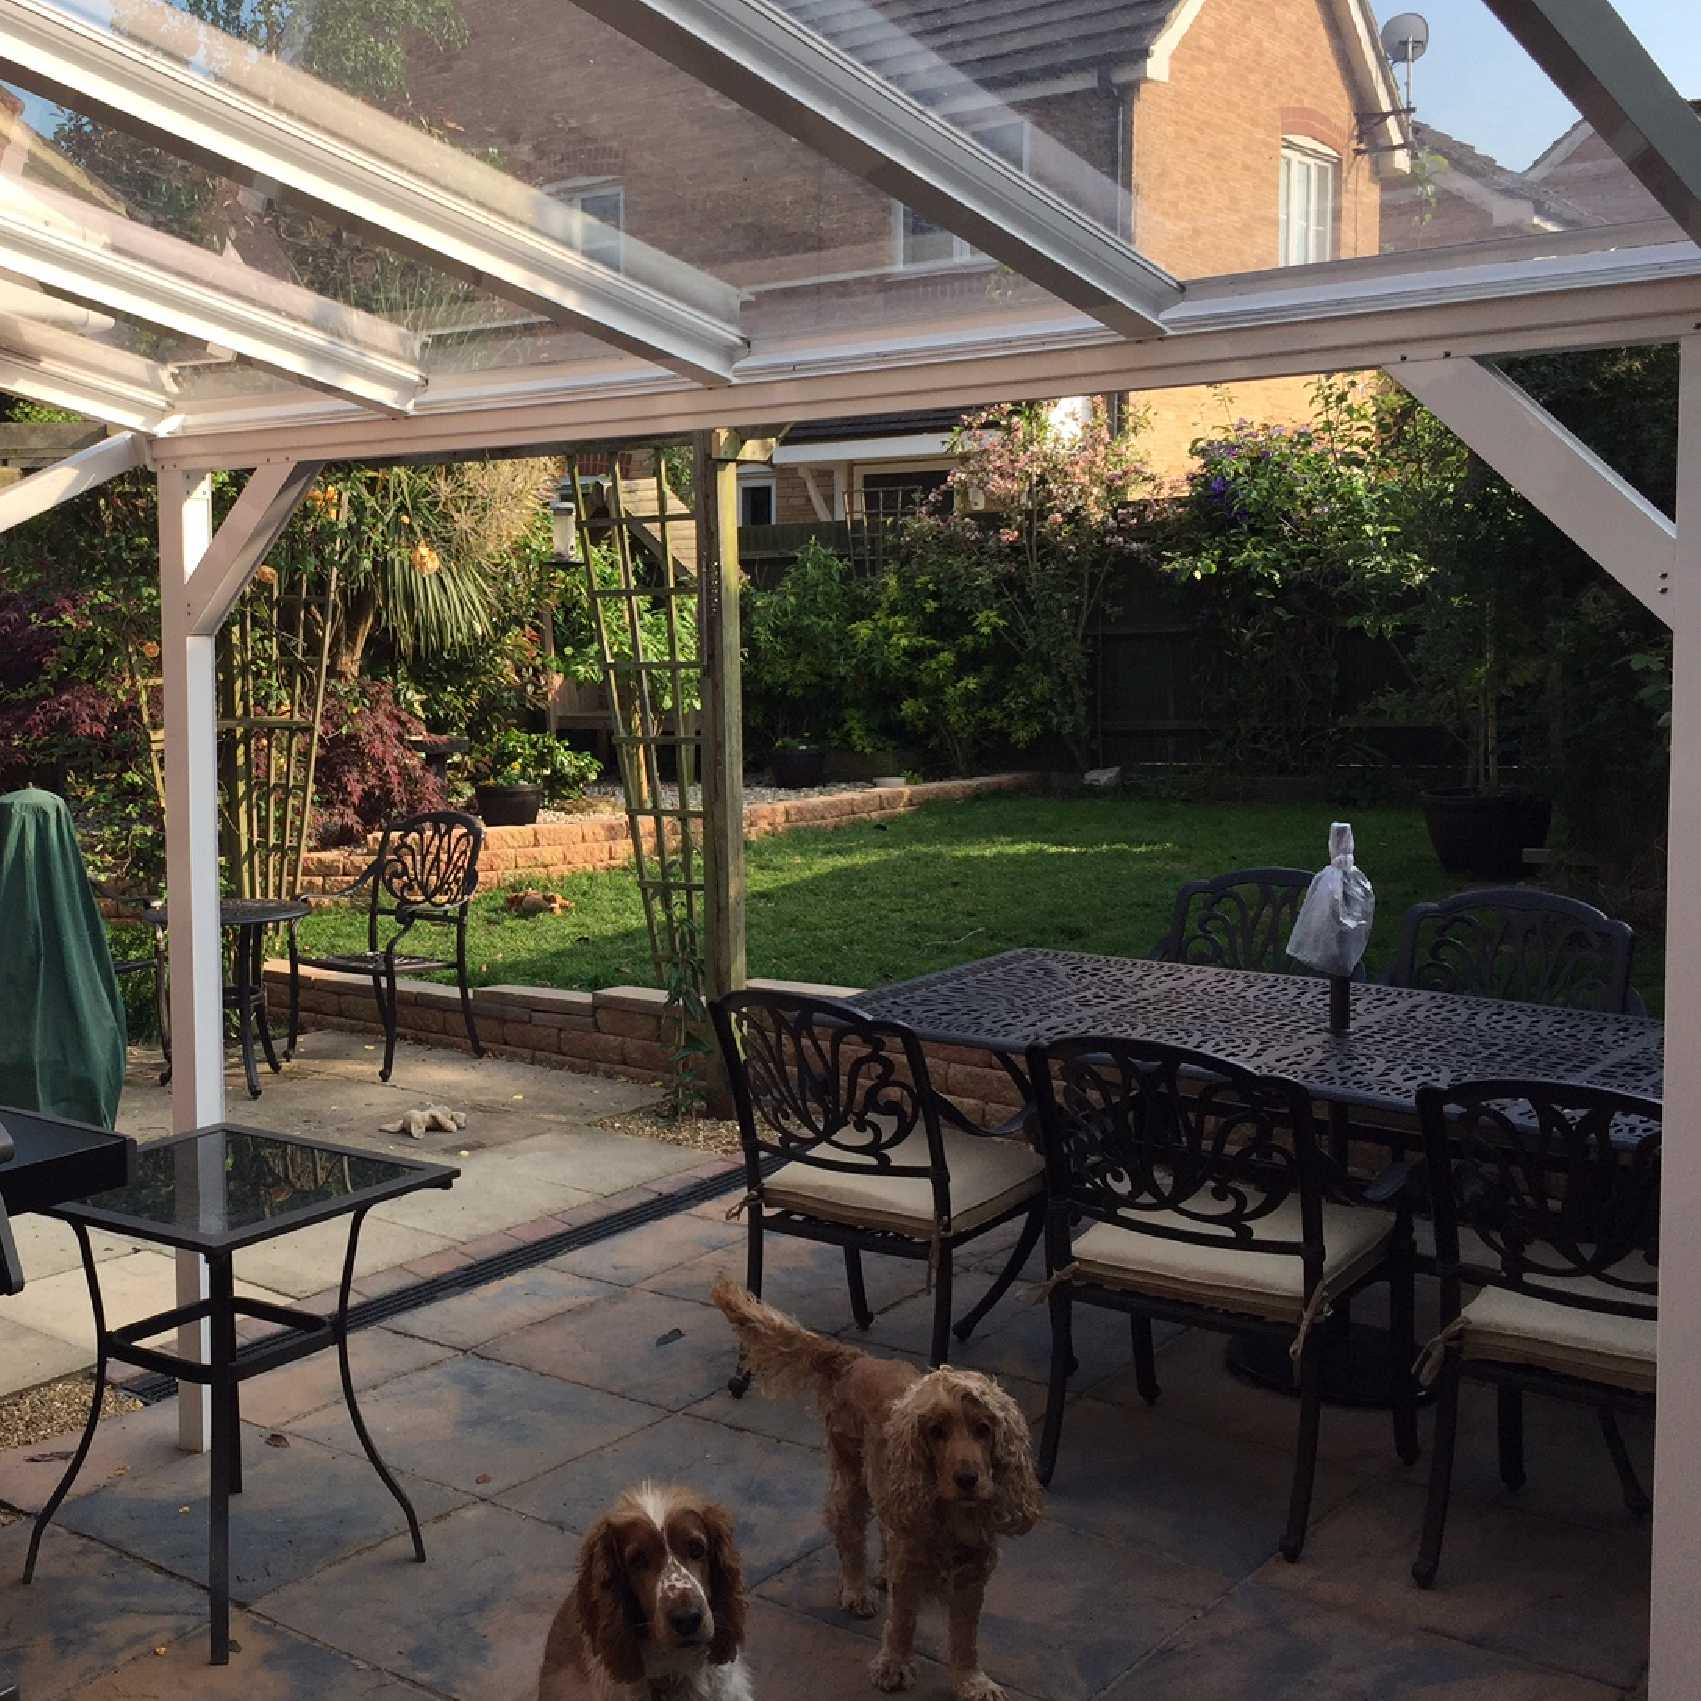 Affordable Omega Smart Lean-To Canopy with 6mm Glass Clear Plate Polycarbonate Glazing - 7.0m (W) x 3.5m (P), (4) Supporting Posts